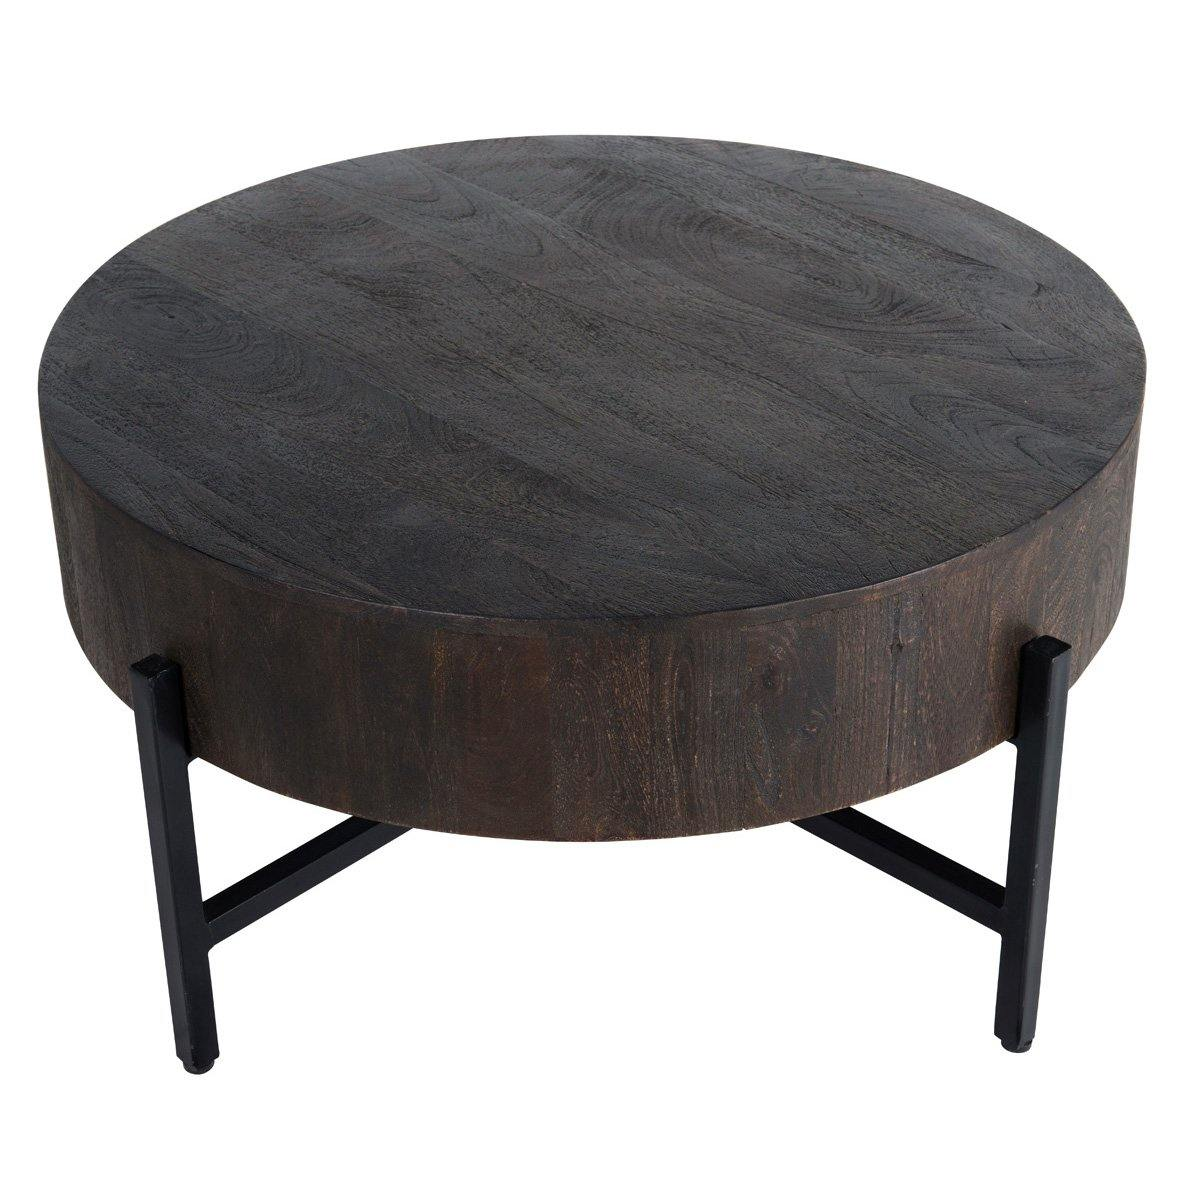 Toronto Round Coffee Table - The Tin Roof Furniture